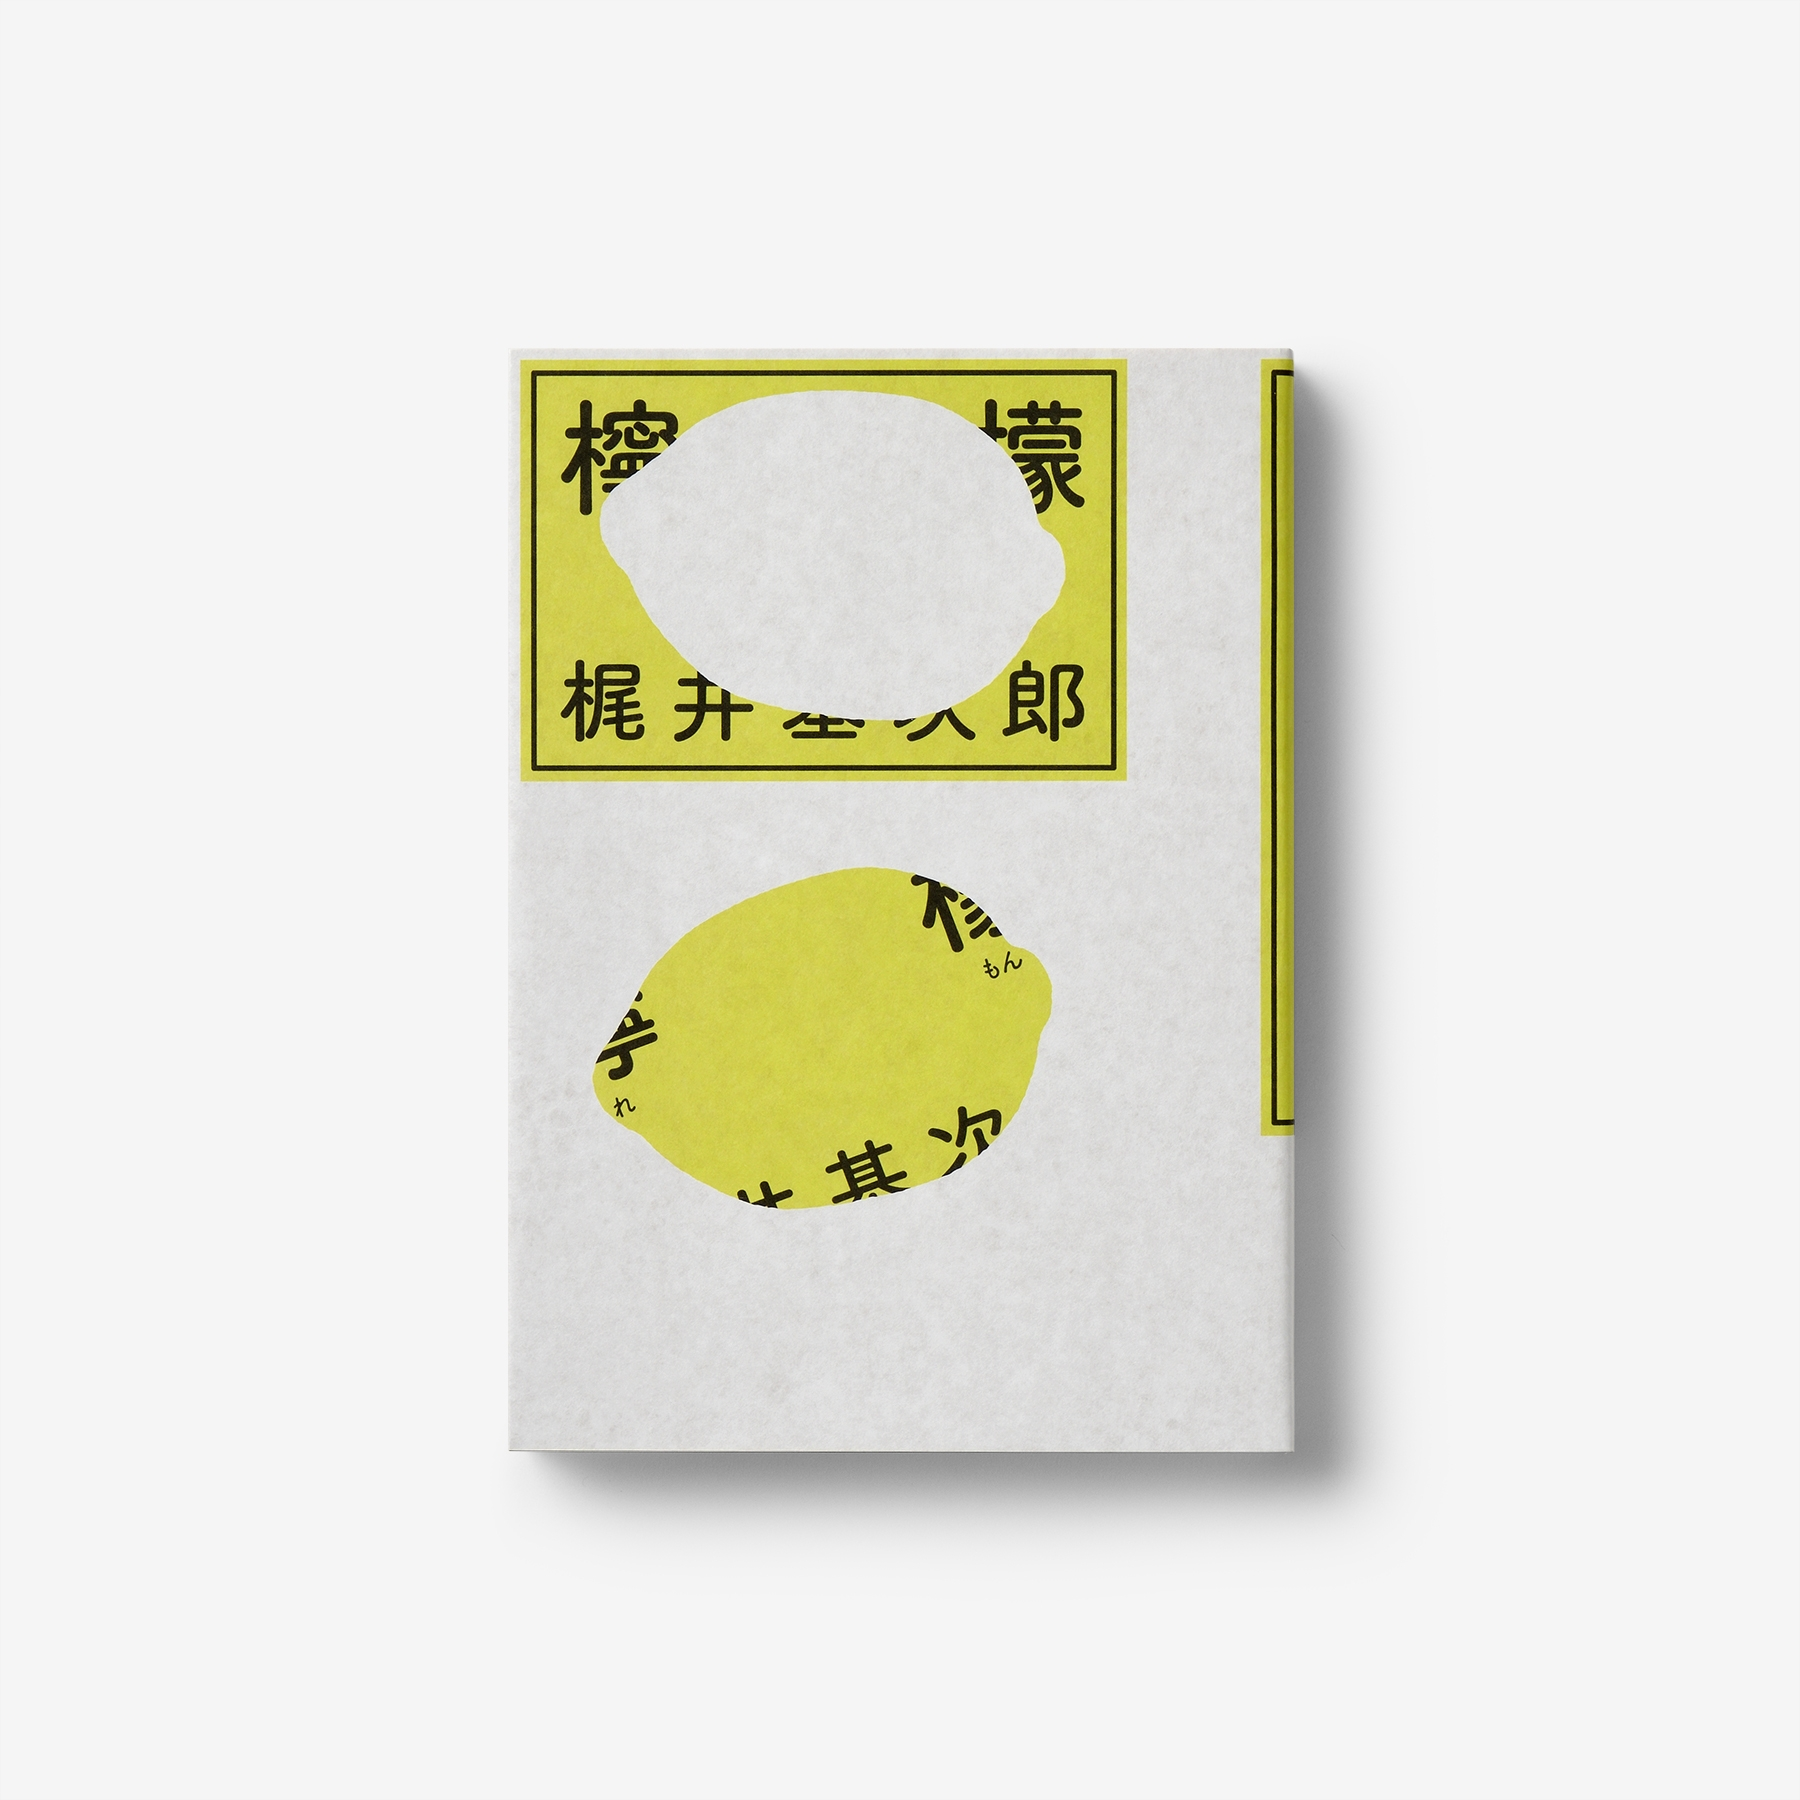 Lemon Taiwanese edition authore - northeastco | ello